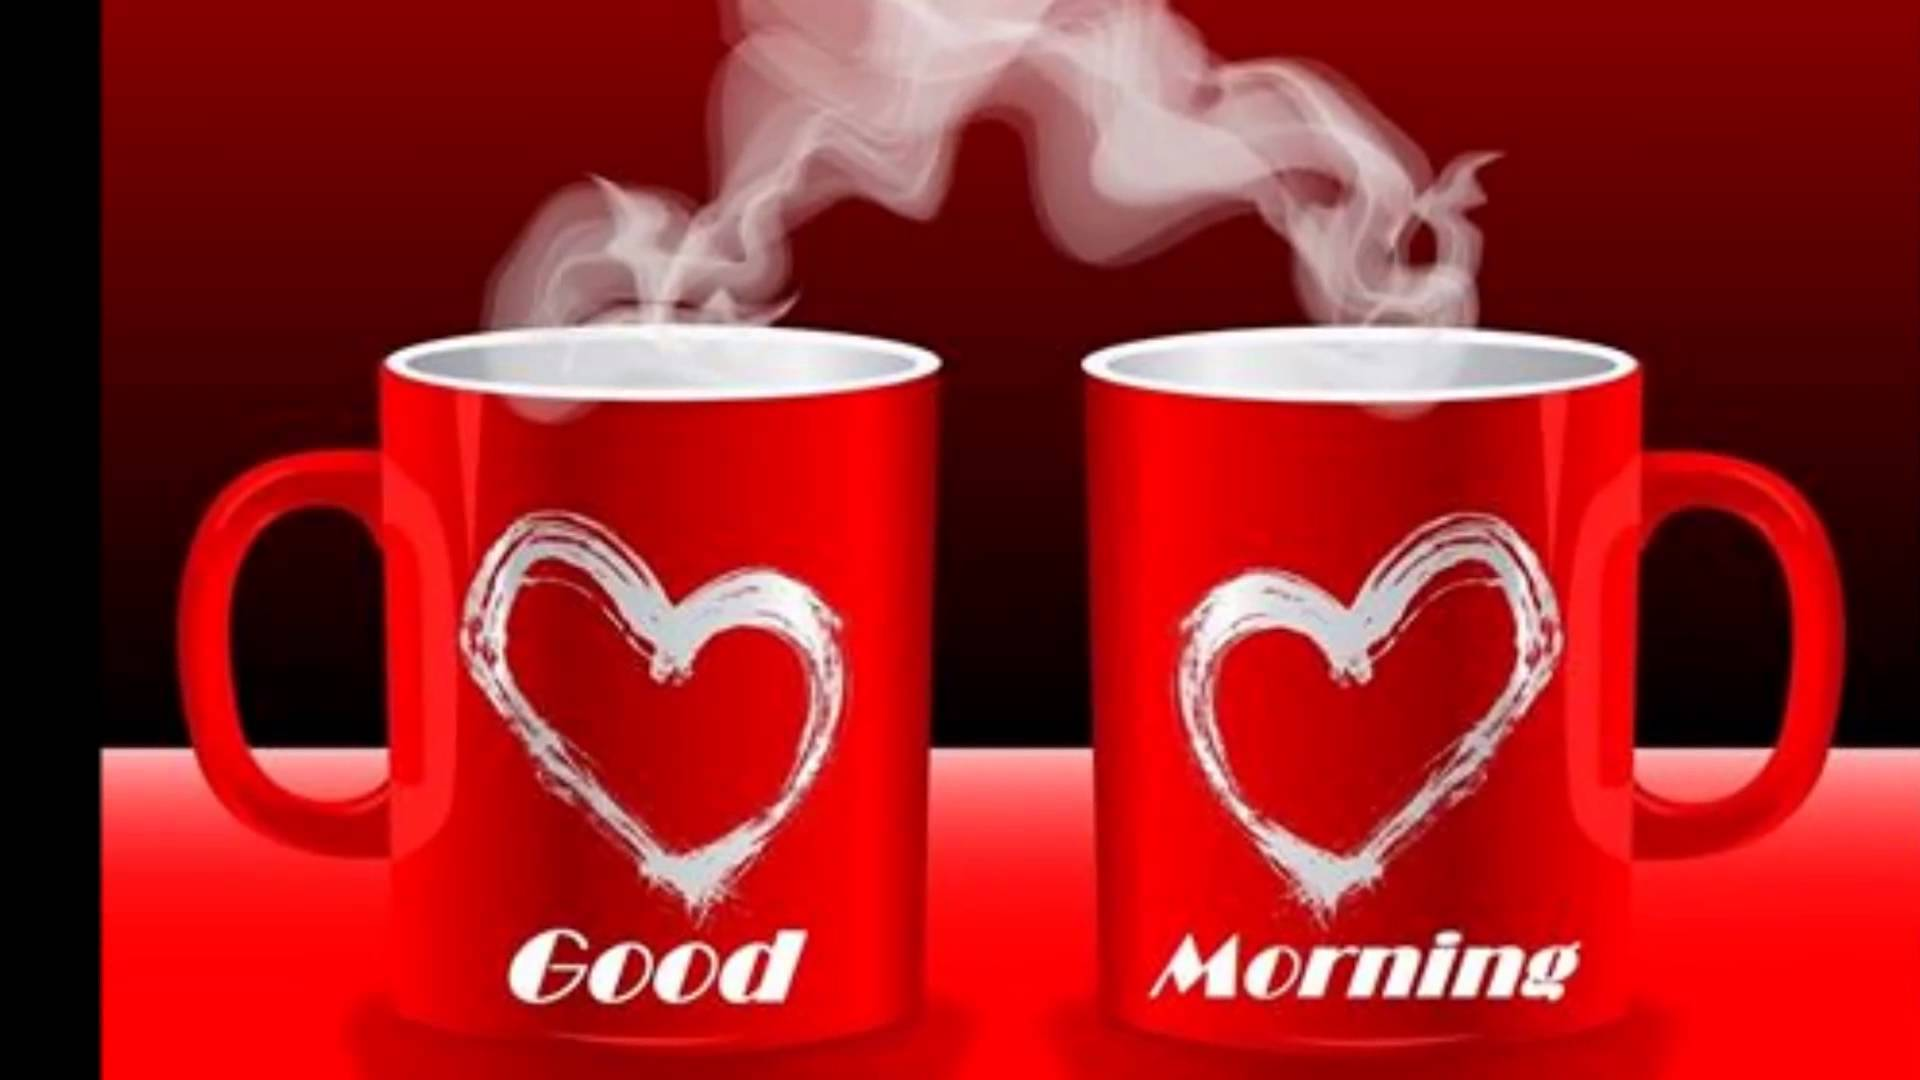 Good Morning Friend Wallpapers - Wallpaper Cave